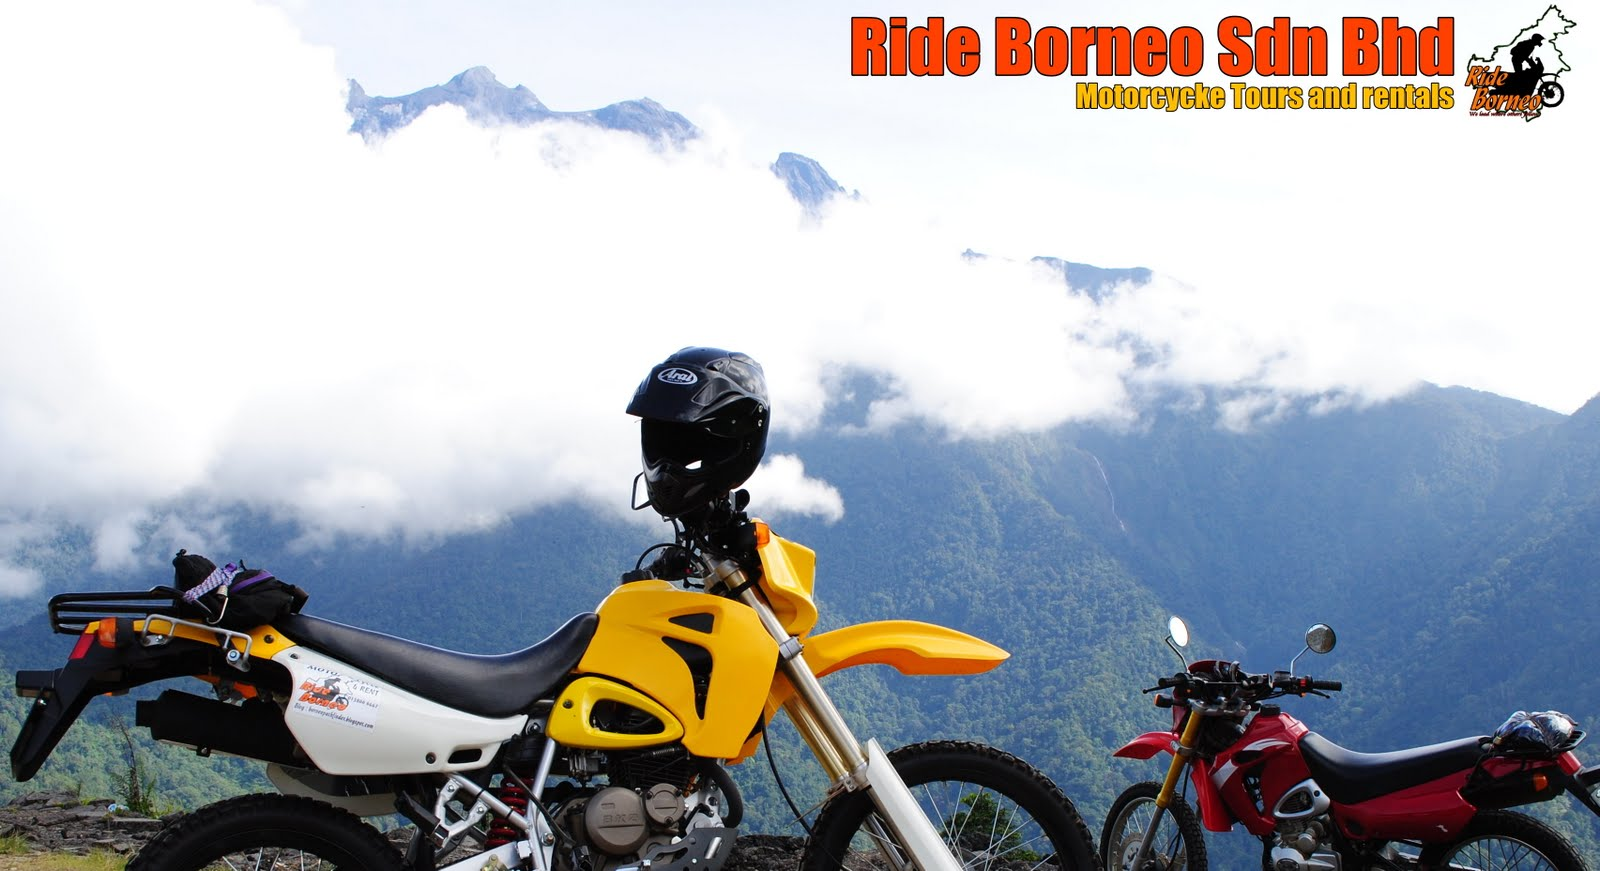 Motorcycle rentals ride borneo motorcycle rentals Motor cycle rentals